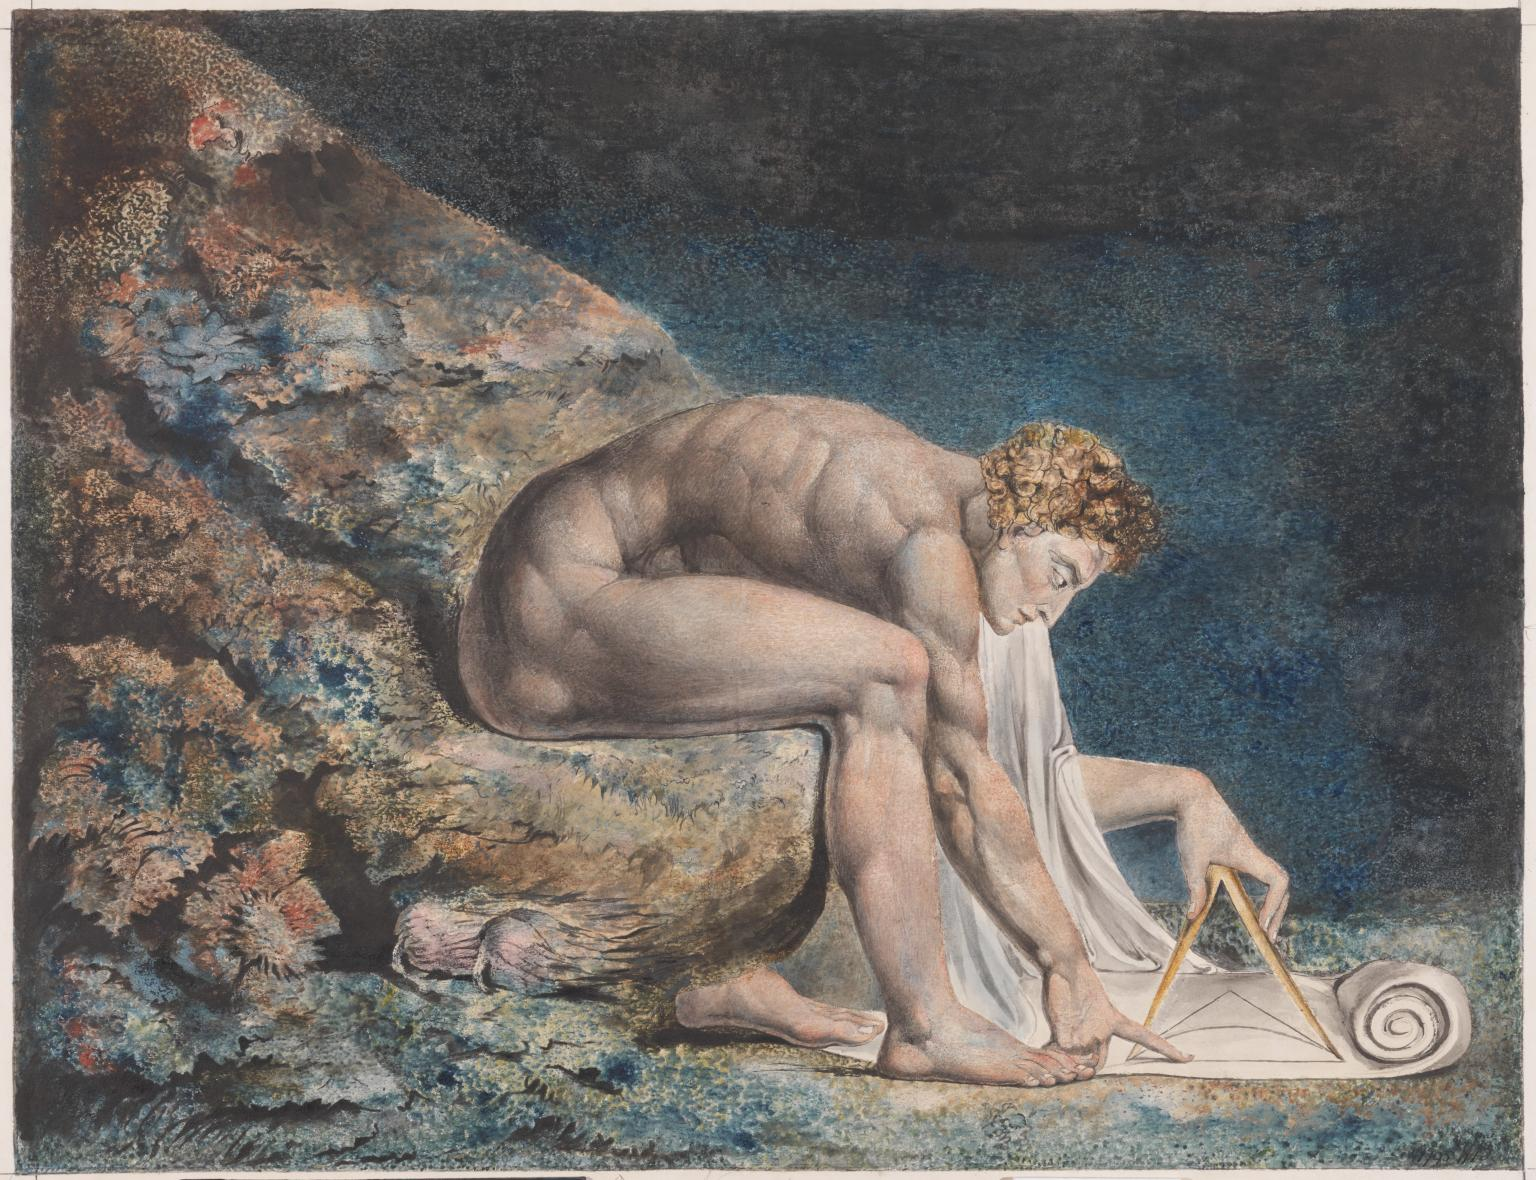 Tate Britain Is To Conduct William Blake's Exhibition